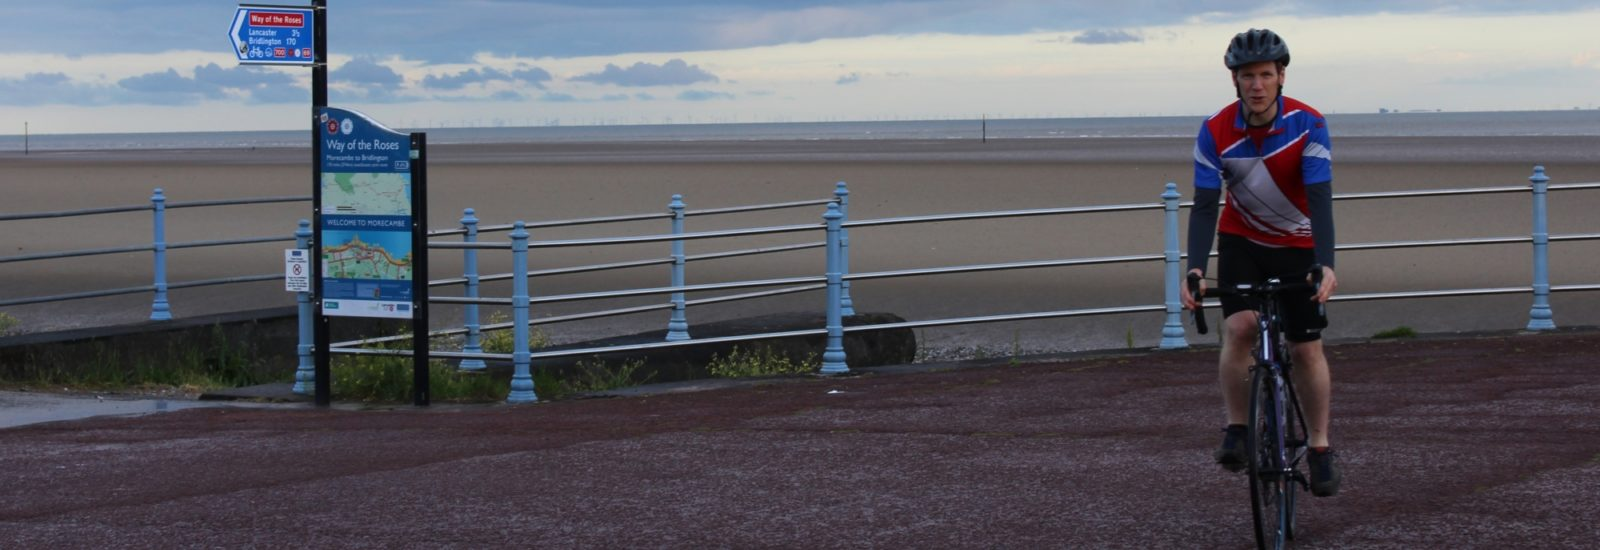 Crop0201 5:45am Starting My Bid For The East Coast A Cool Early Morning Escape From Morecambe